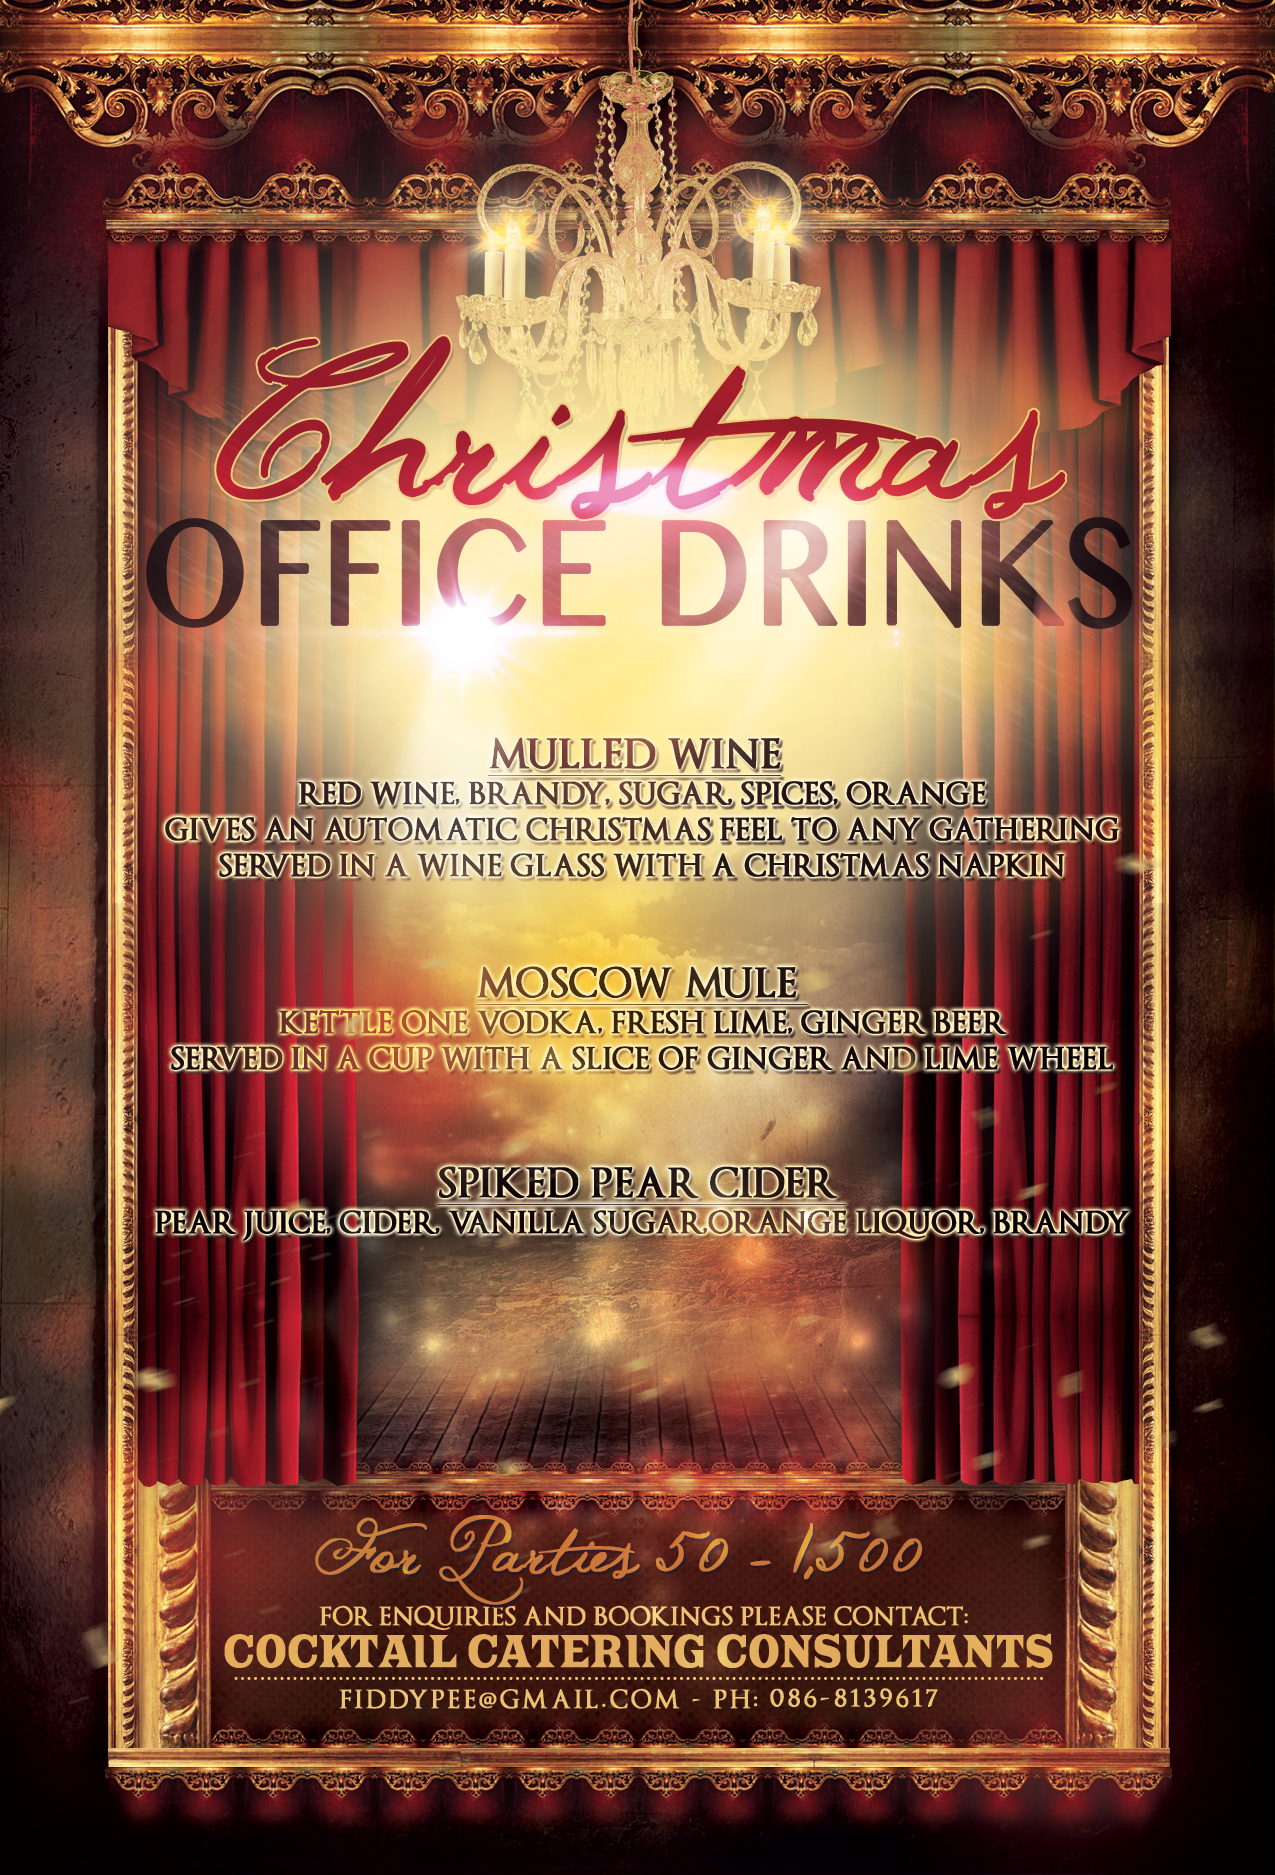 Office Party advertisement poster design